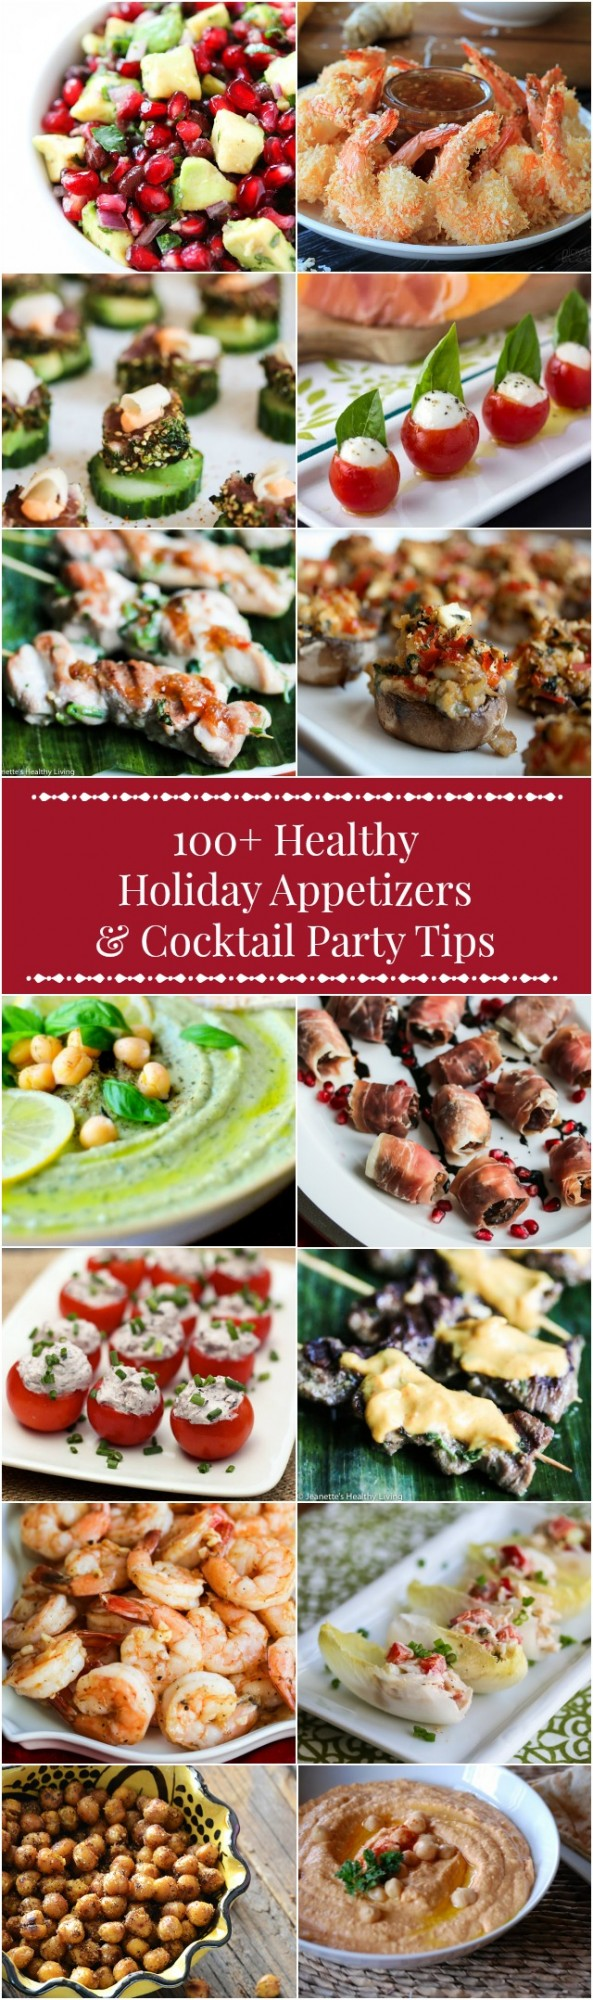 Healthy Christmas Appetizers Pinterest 100 Healthy Holiday Appetizer Recipes Cocktail Party Menu